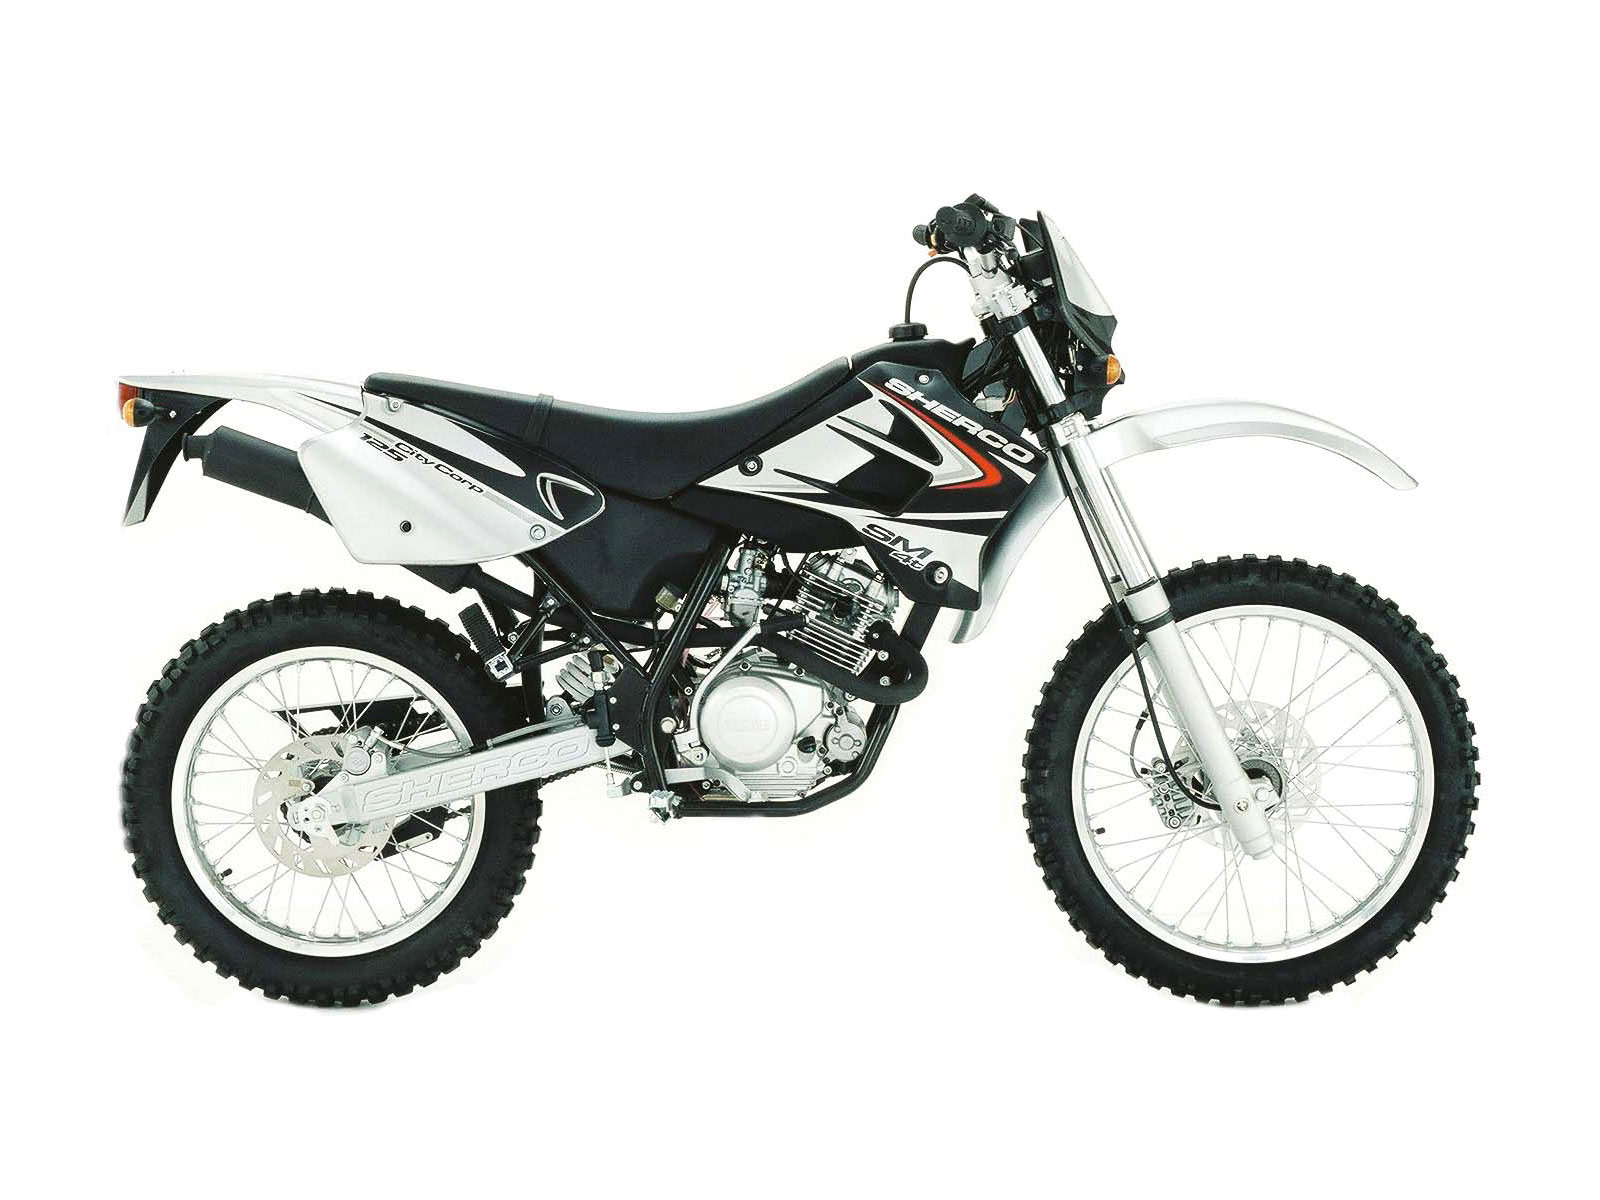 2006 sherco citycorp 125 enduro motorcycle accident lawyers. Black Bedroom Furniture Sets. Home Design Ideas